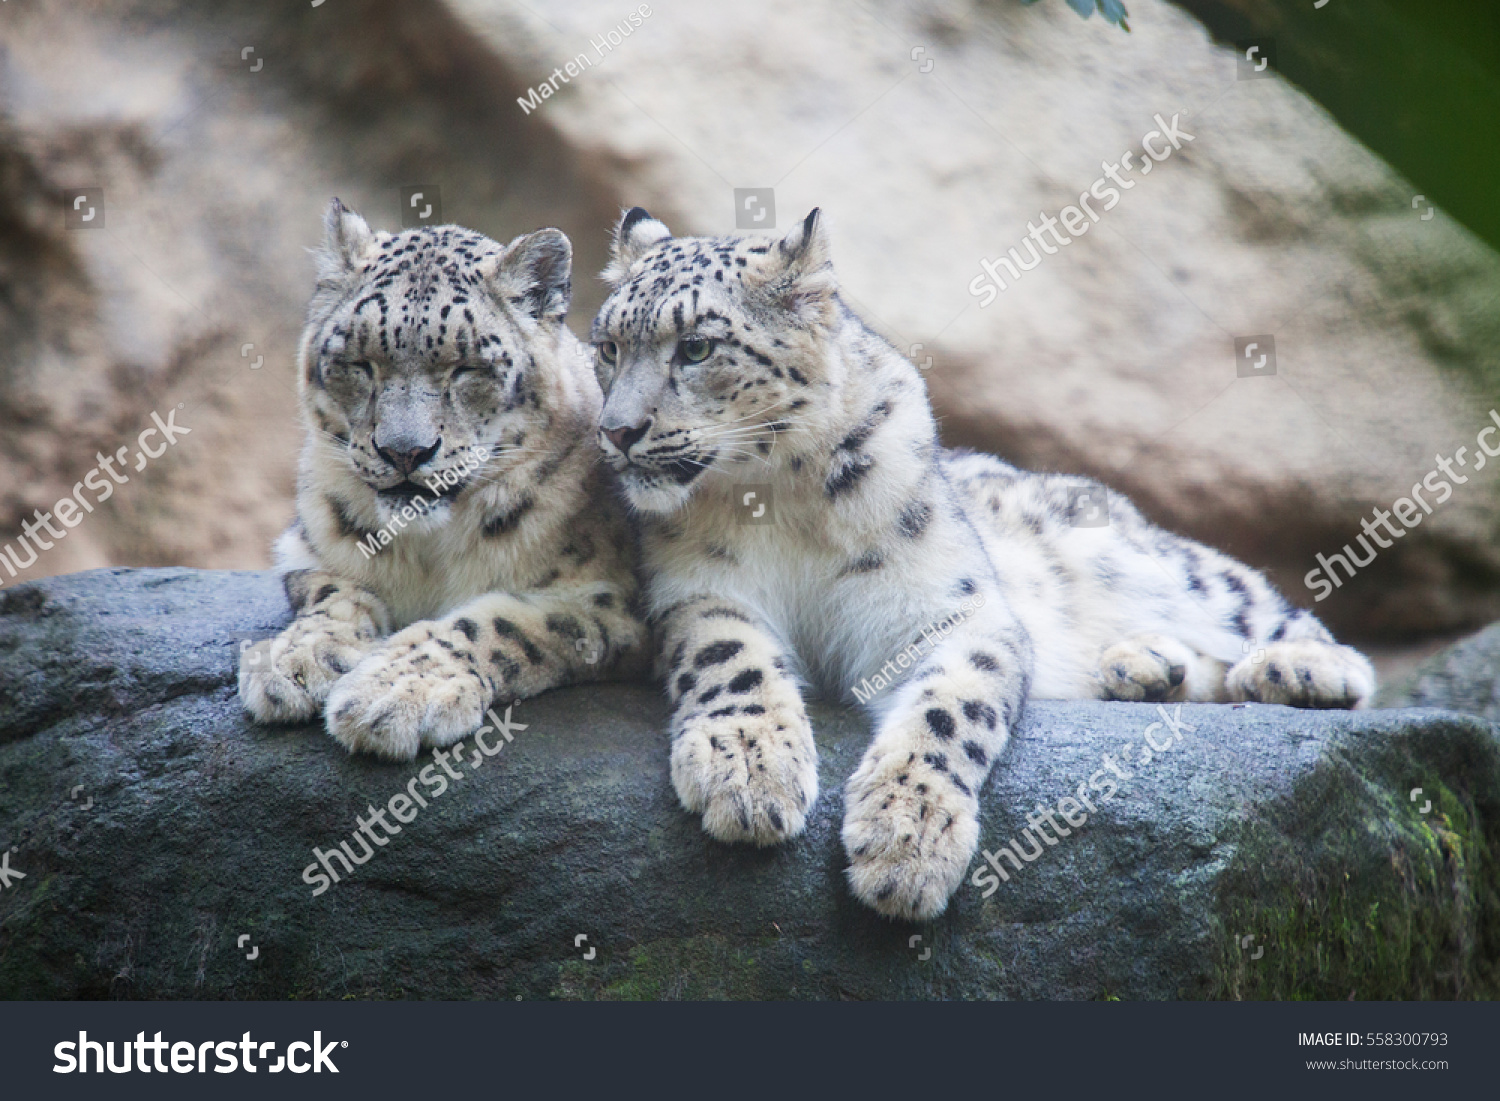 pair snow leopard clear rock background stock photo (download now